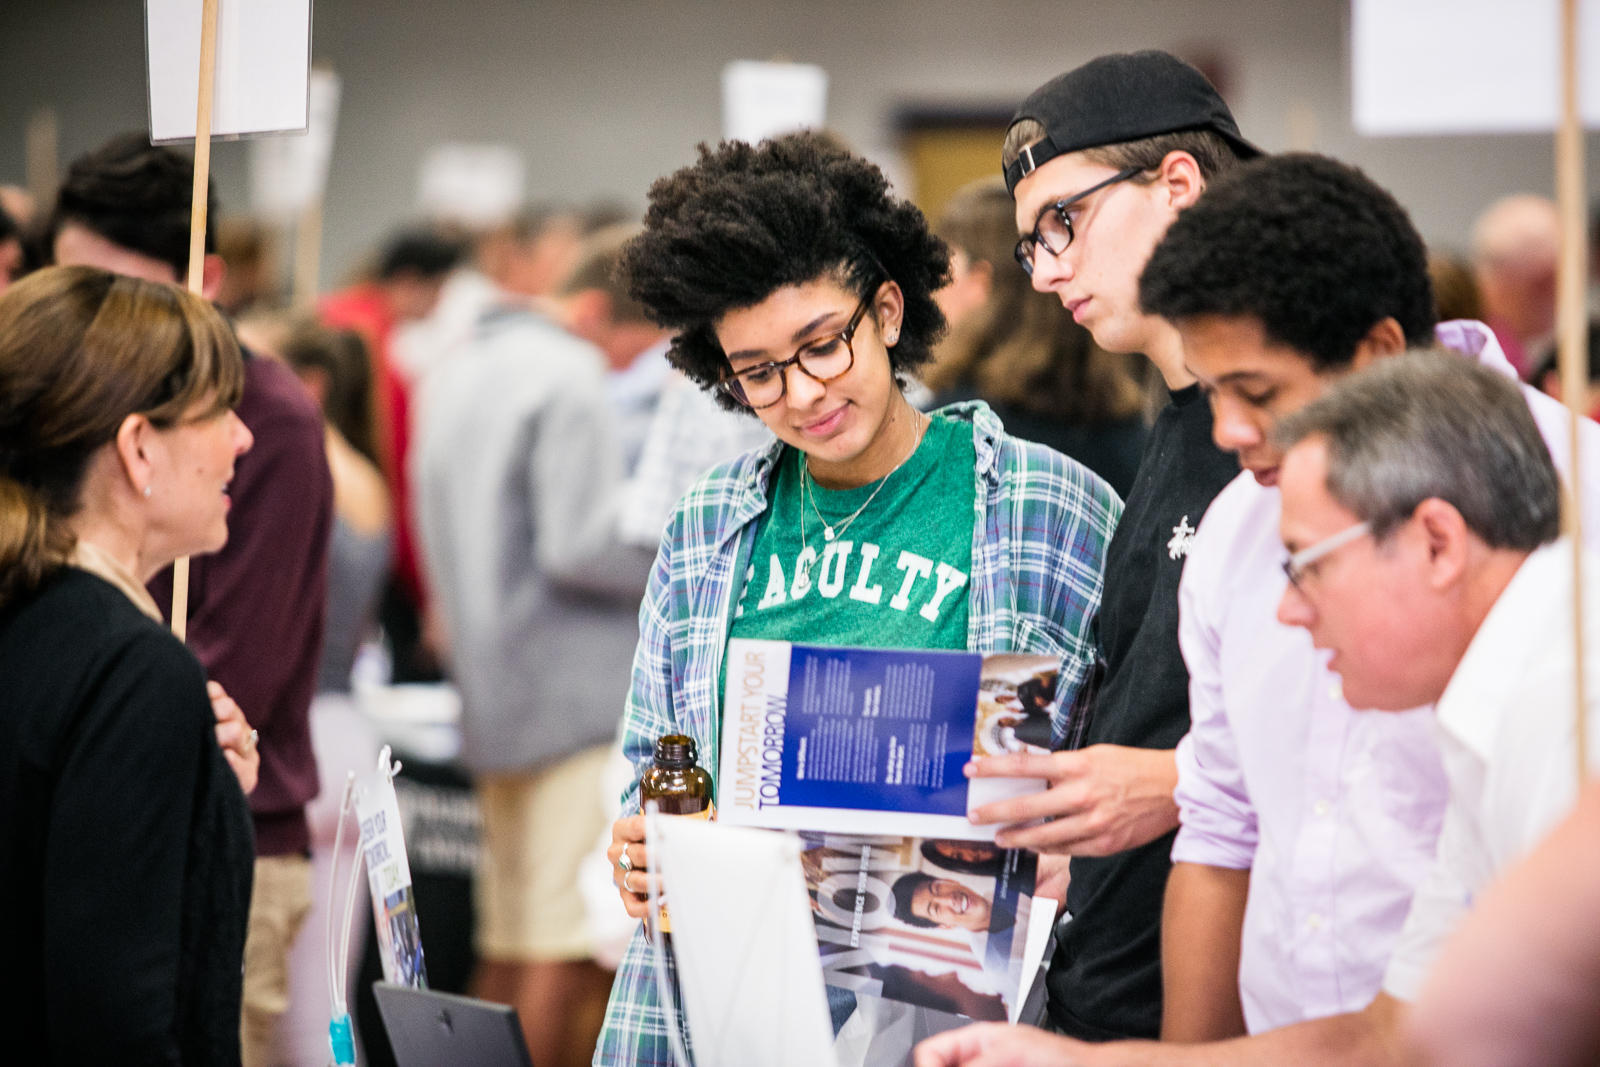 High school students explore college options at the annual VSAC College Fair at Saint Michael's College in Winooski, Vermont. by photographers at Reciprocity Studio for the Vermont Student Assistance Corporation (VSAC)